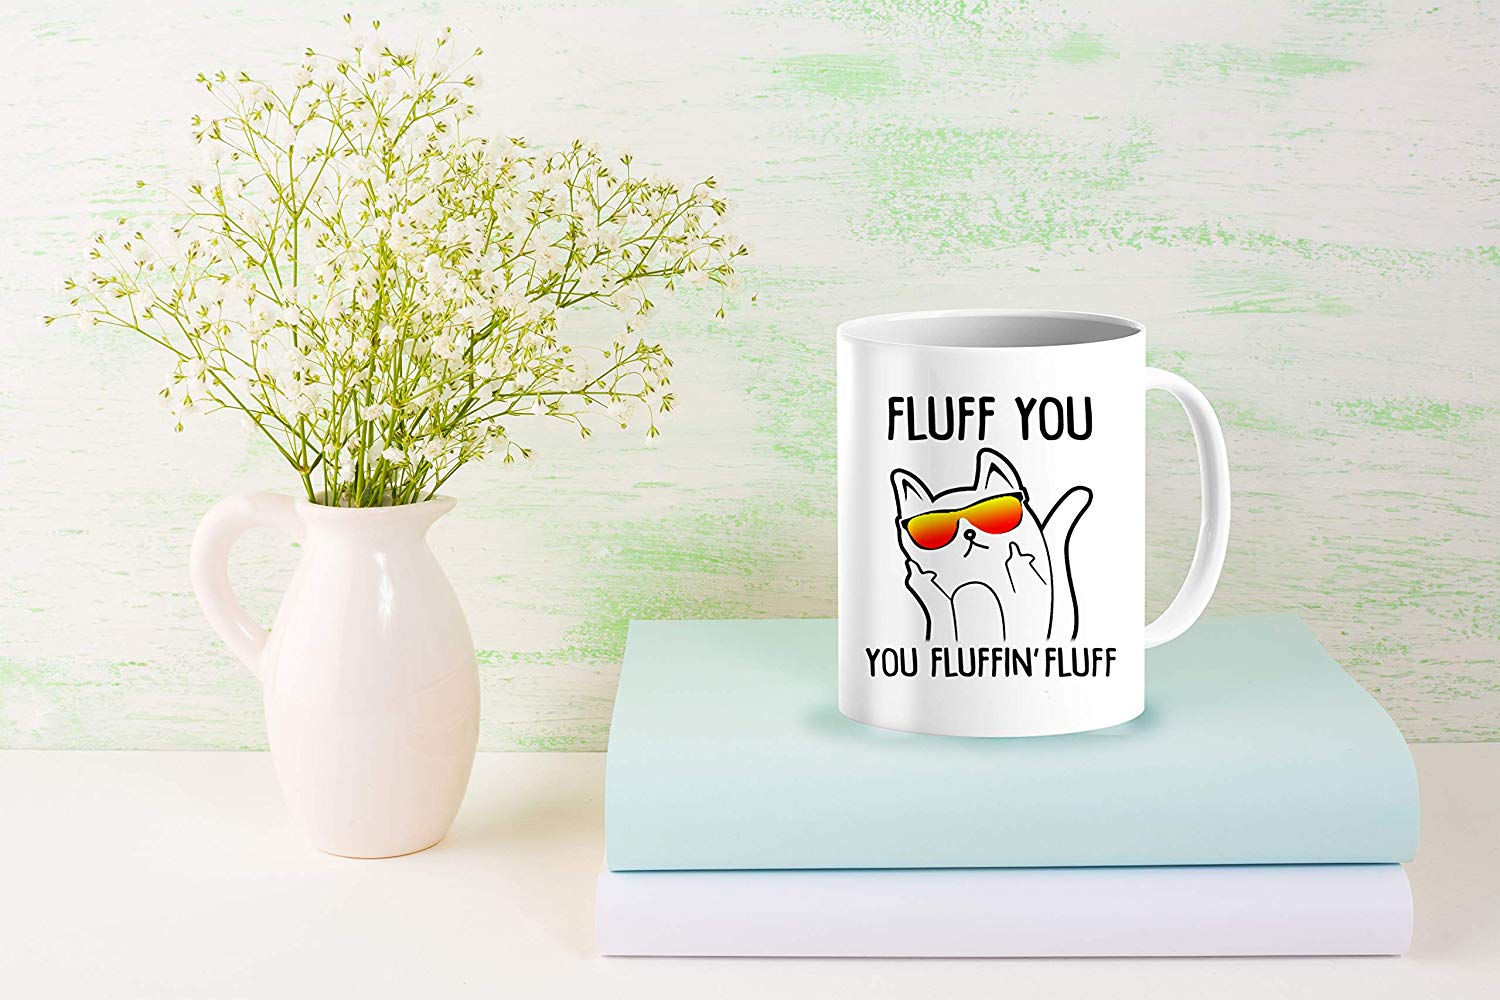 Heat Sensitive Color Changing Coffee Mug Funny Coffee Cup Fluff You You Fluffin Fluff Cat Design Funny Gift Idea B079FZ78QP 9